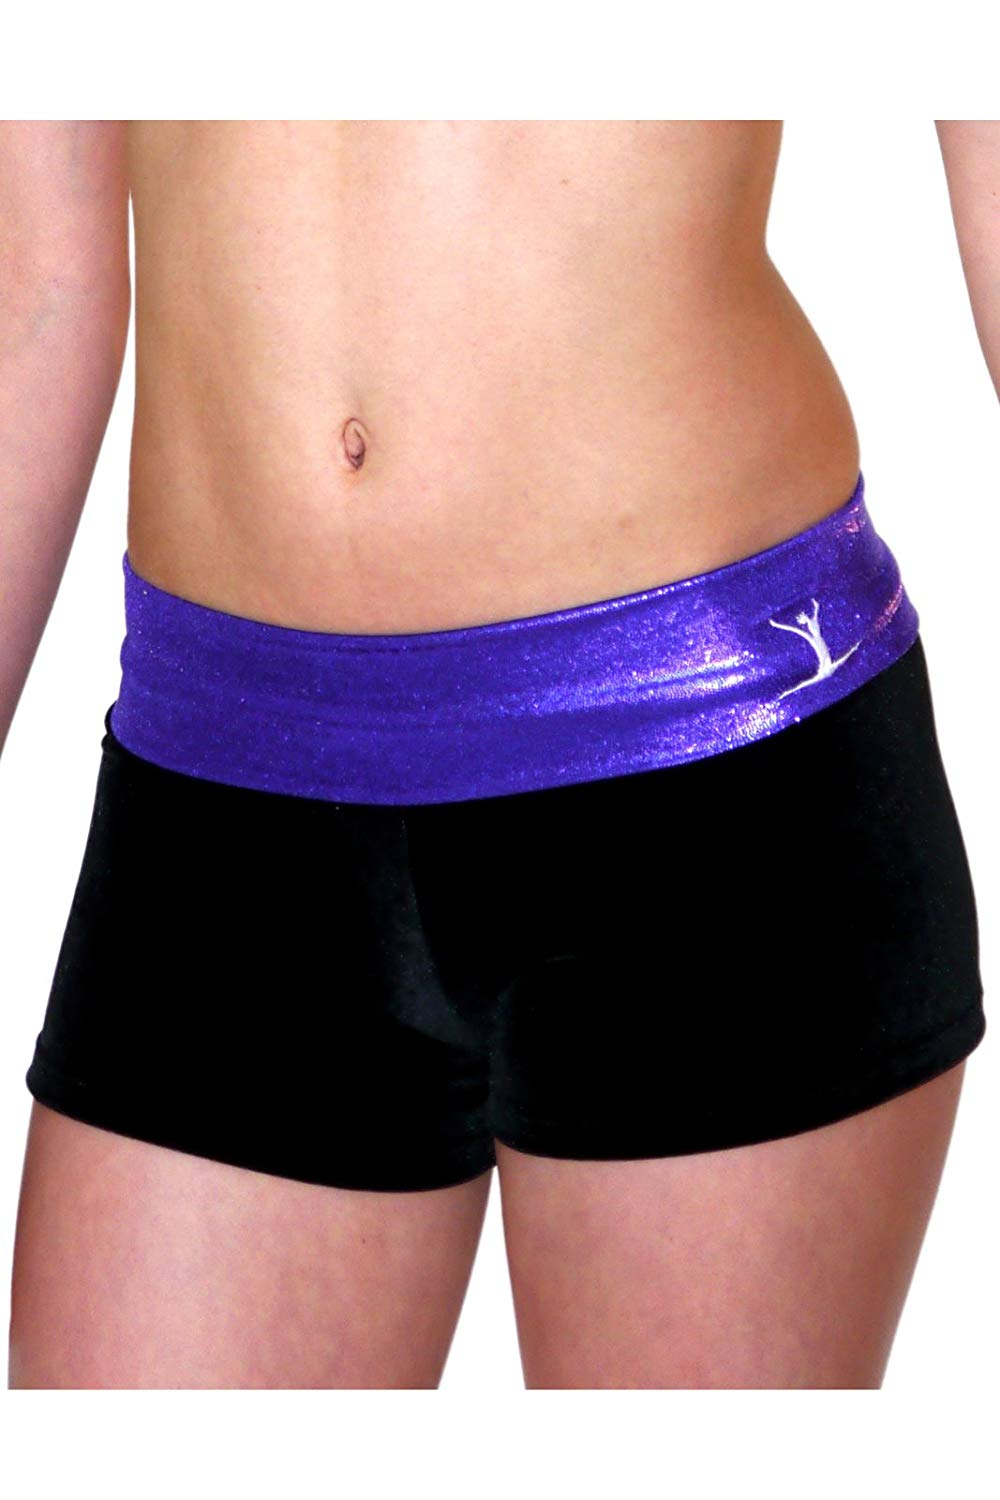 76df1548608 Get Quotations · TW Purple Black Hipster Shorts